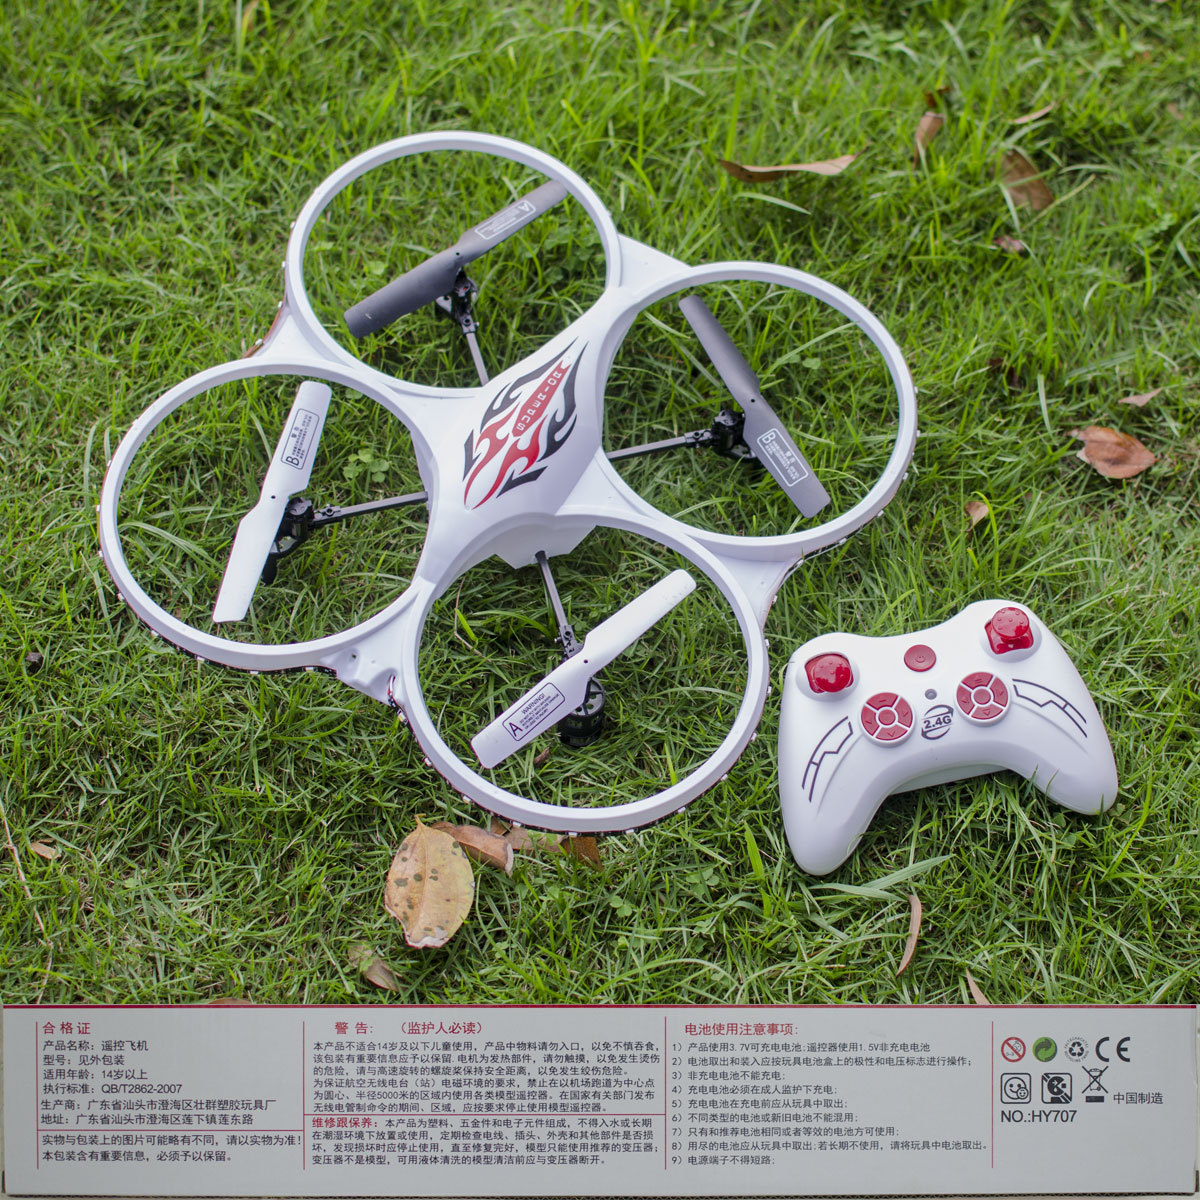 709 Unmanned Aerial Vehicle Aerial Photography Quadcopter Remote Control Aircraft Children Flight Plane Toy